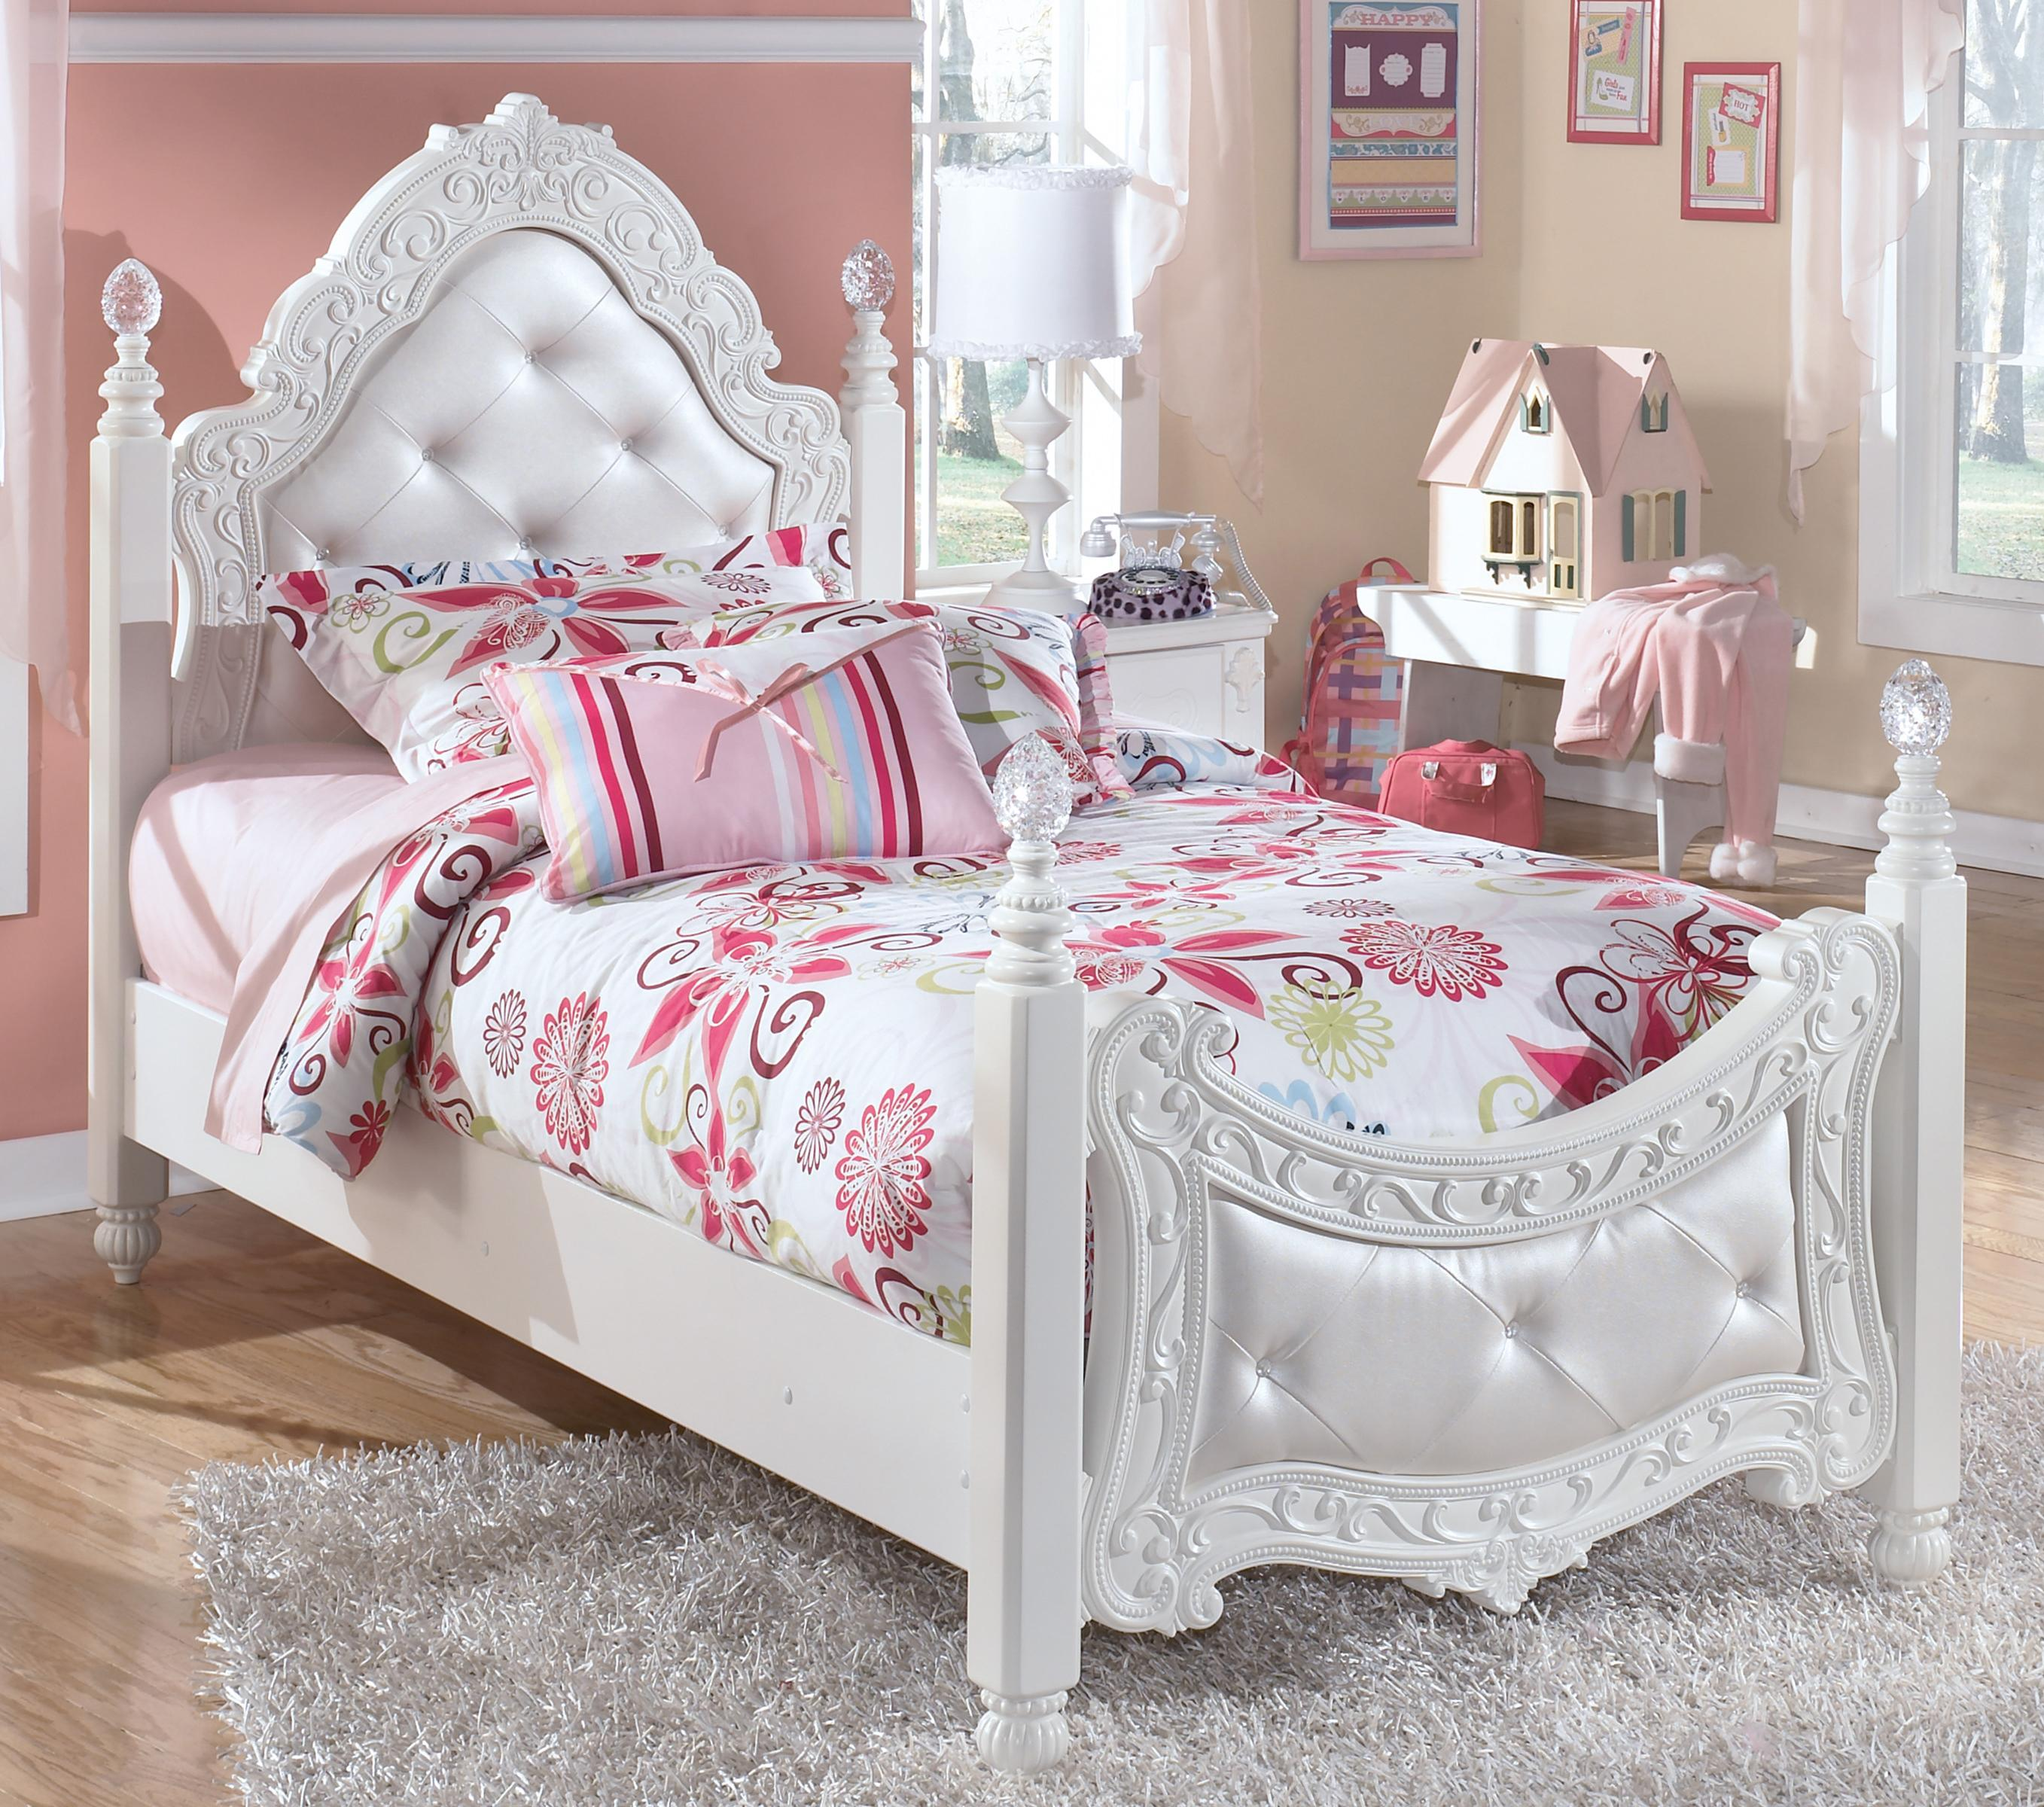 Signature Design By Ashley Exquisite B188 71 82n Twin Ornate Poster Bed With Tufted Headboard